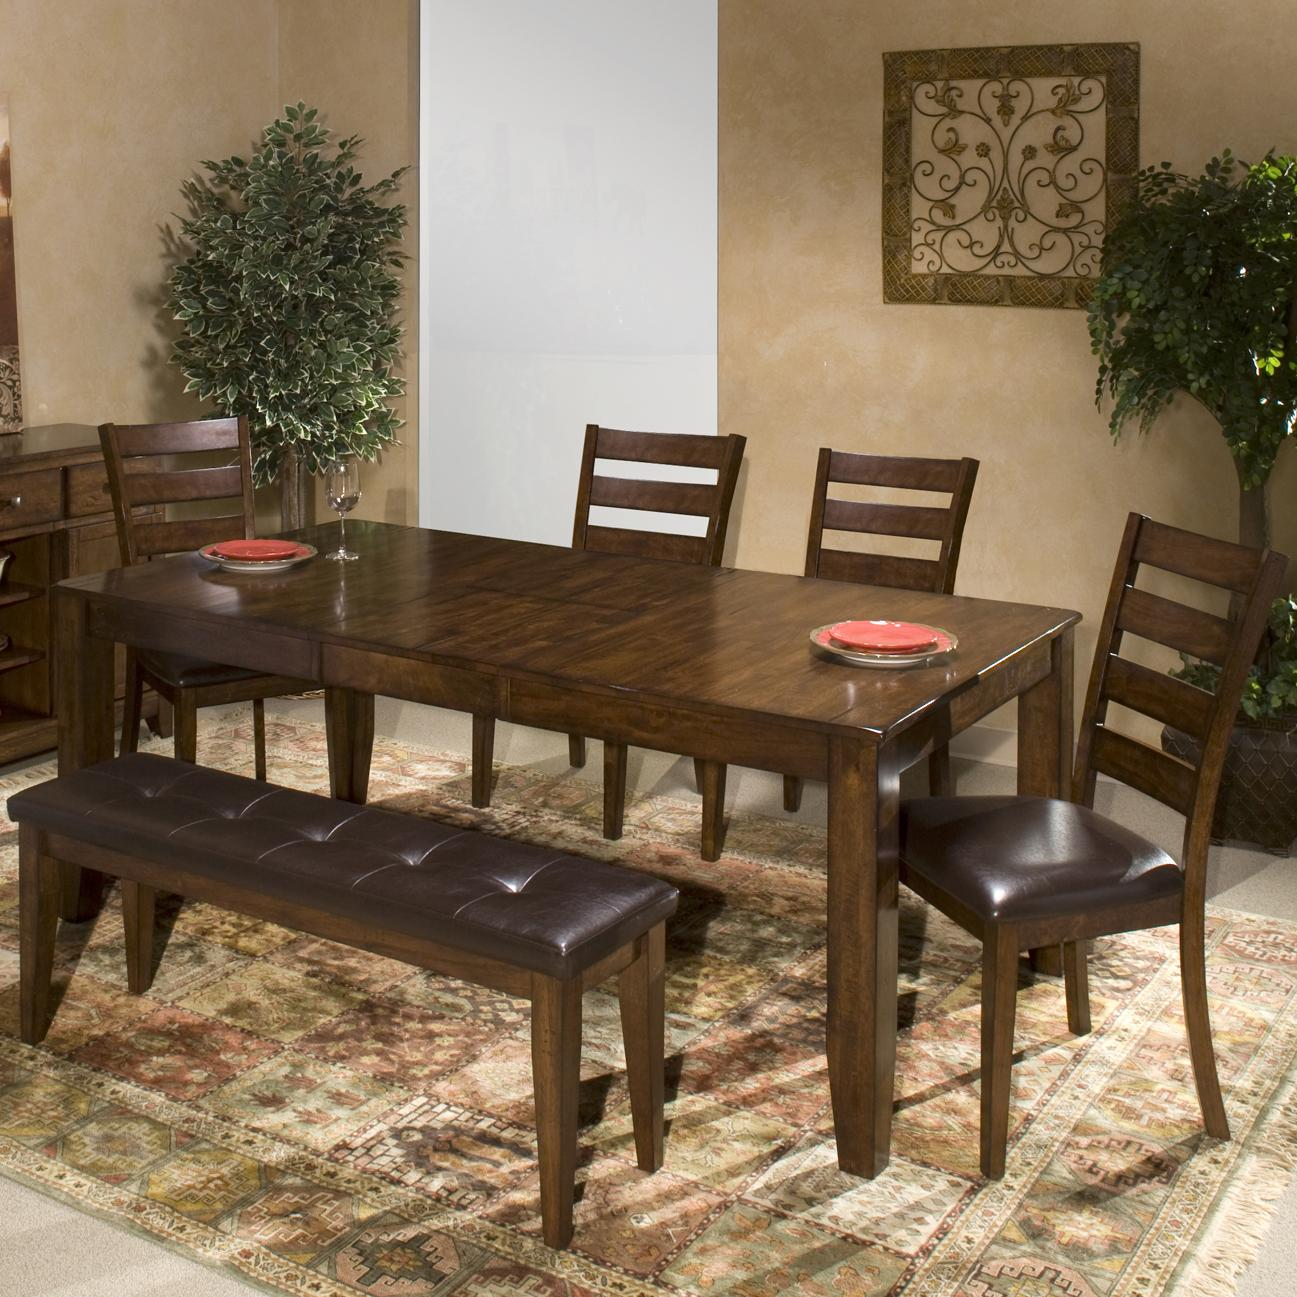 6 Piece Mango Wood Dining Room Set